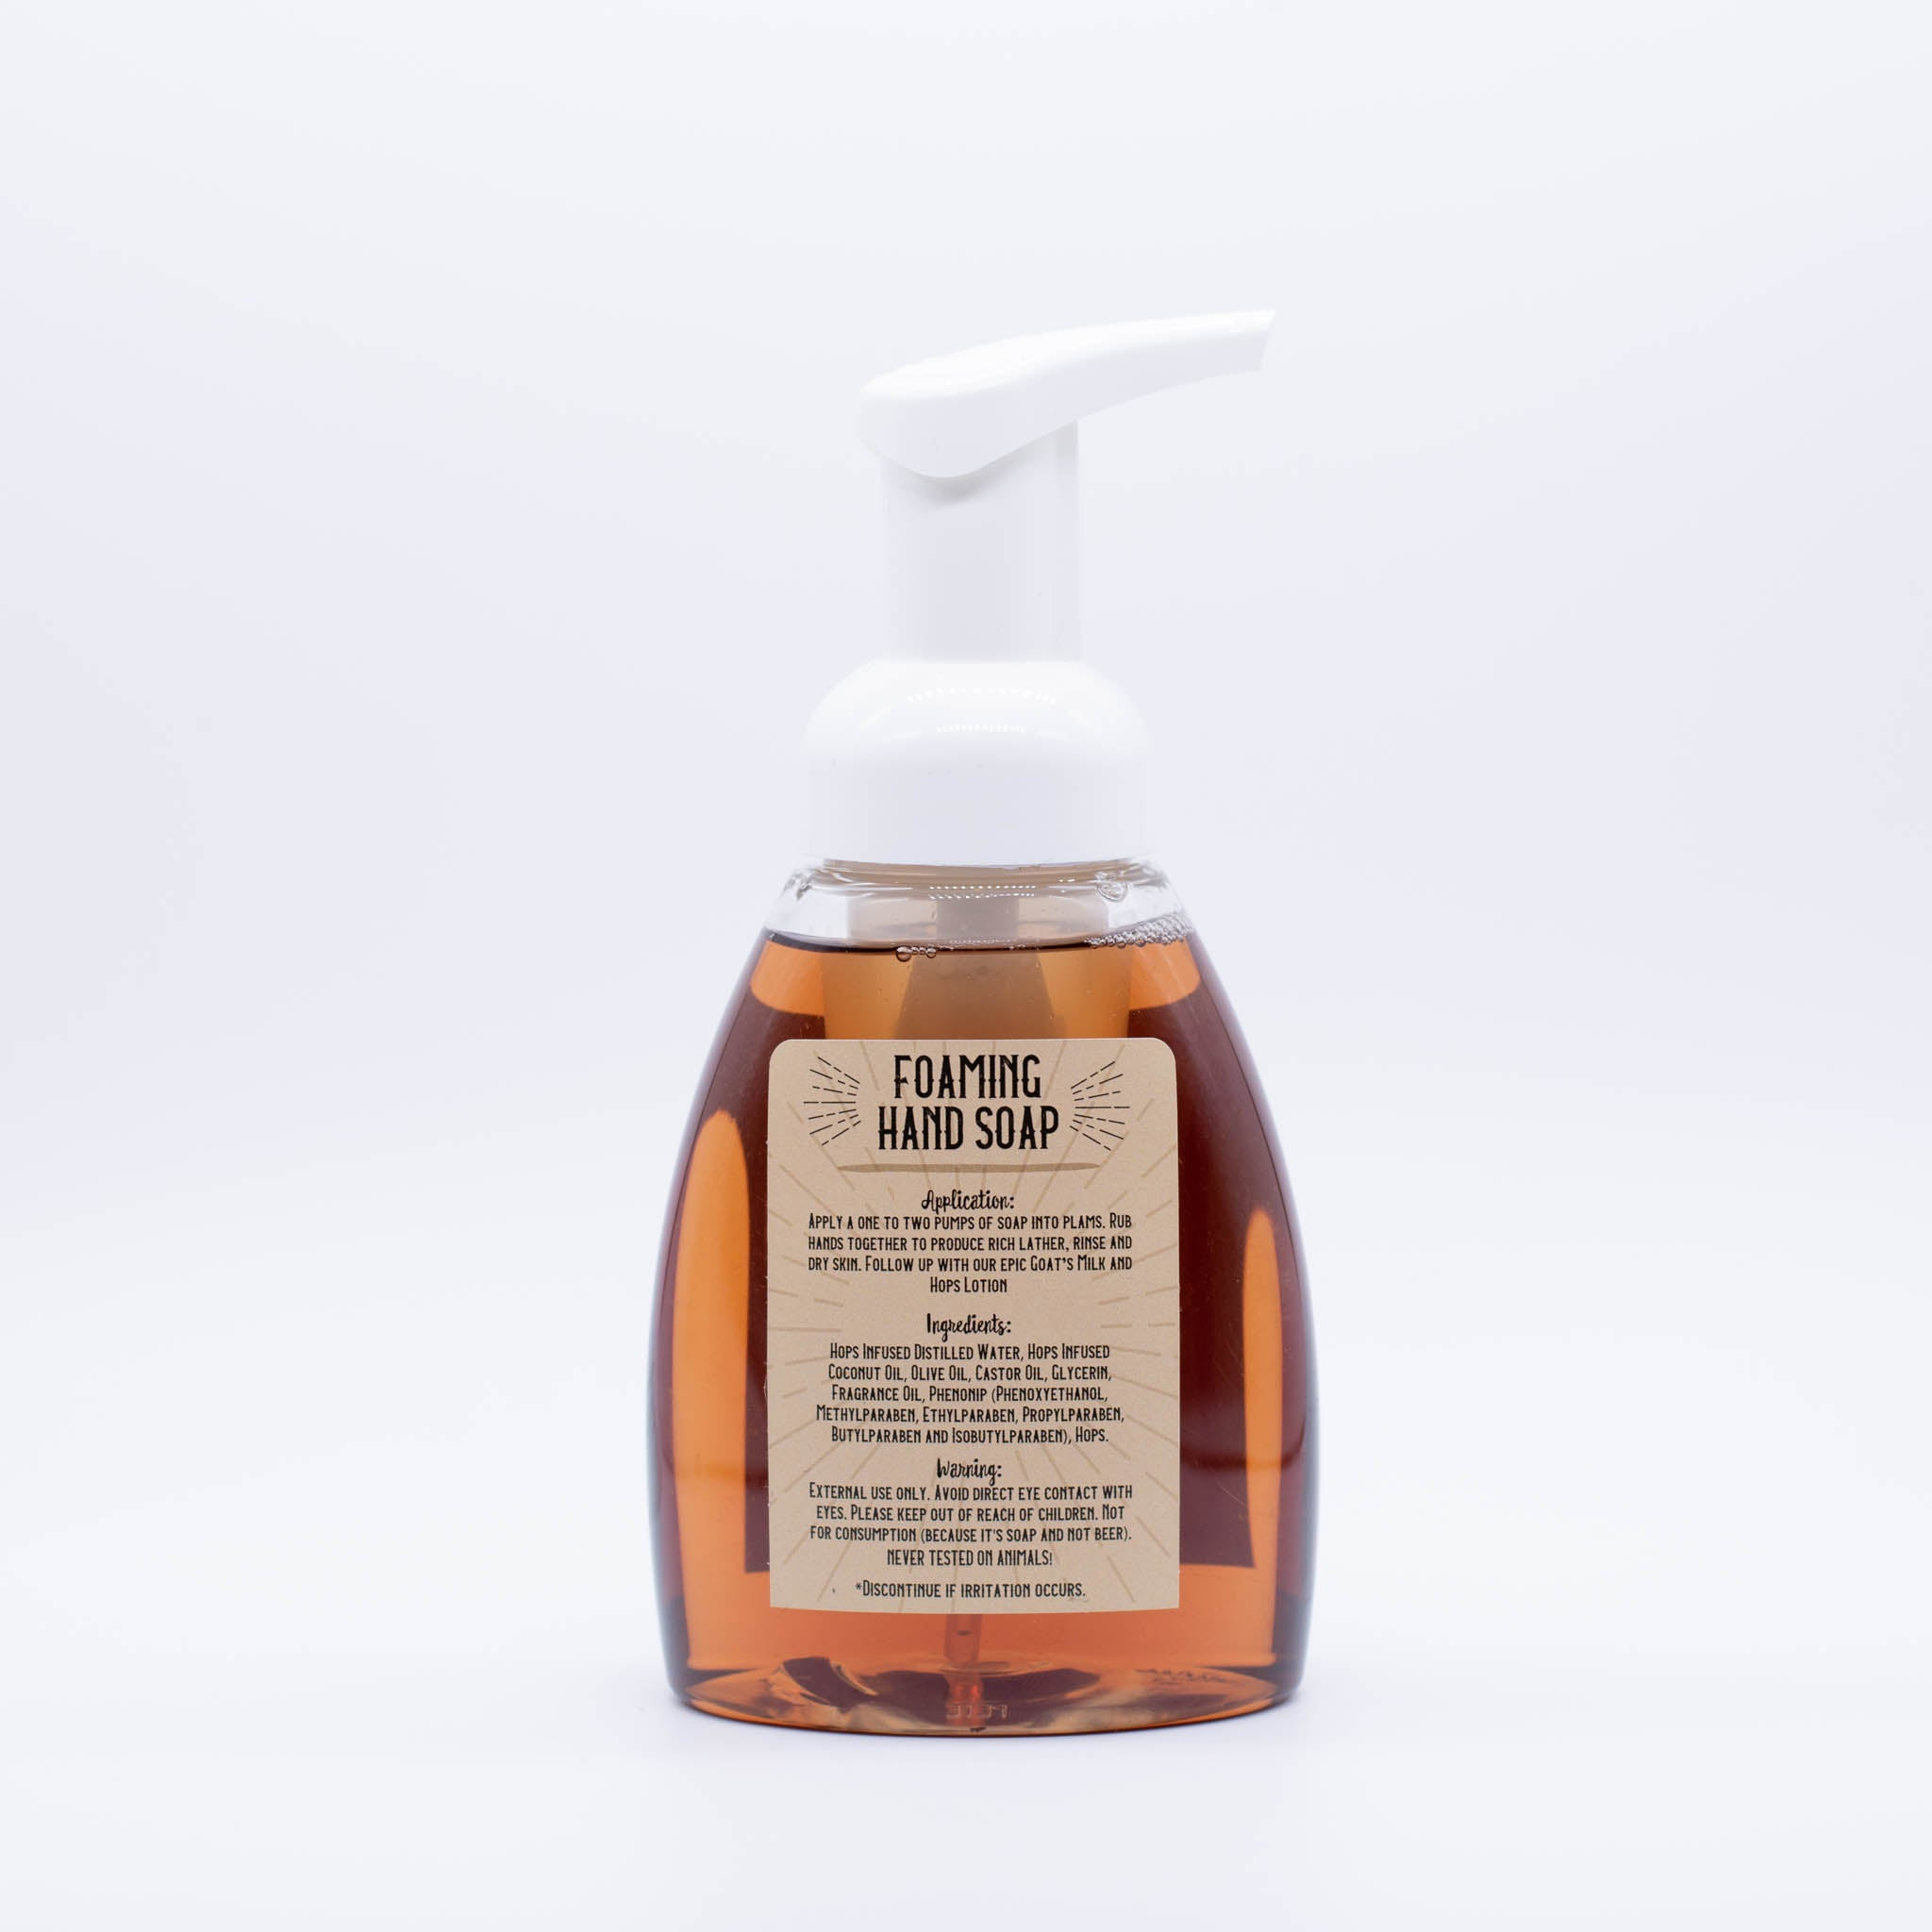 TRADE Ale Foaming Hand Soap